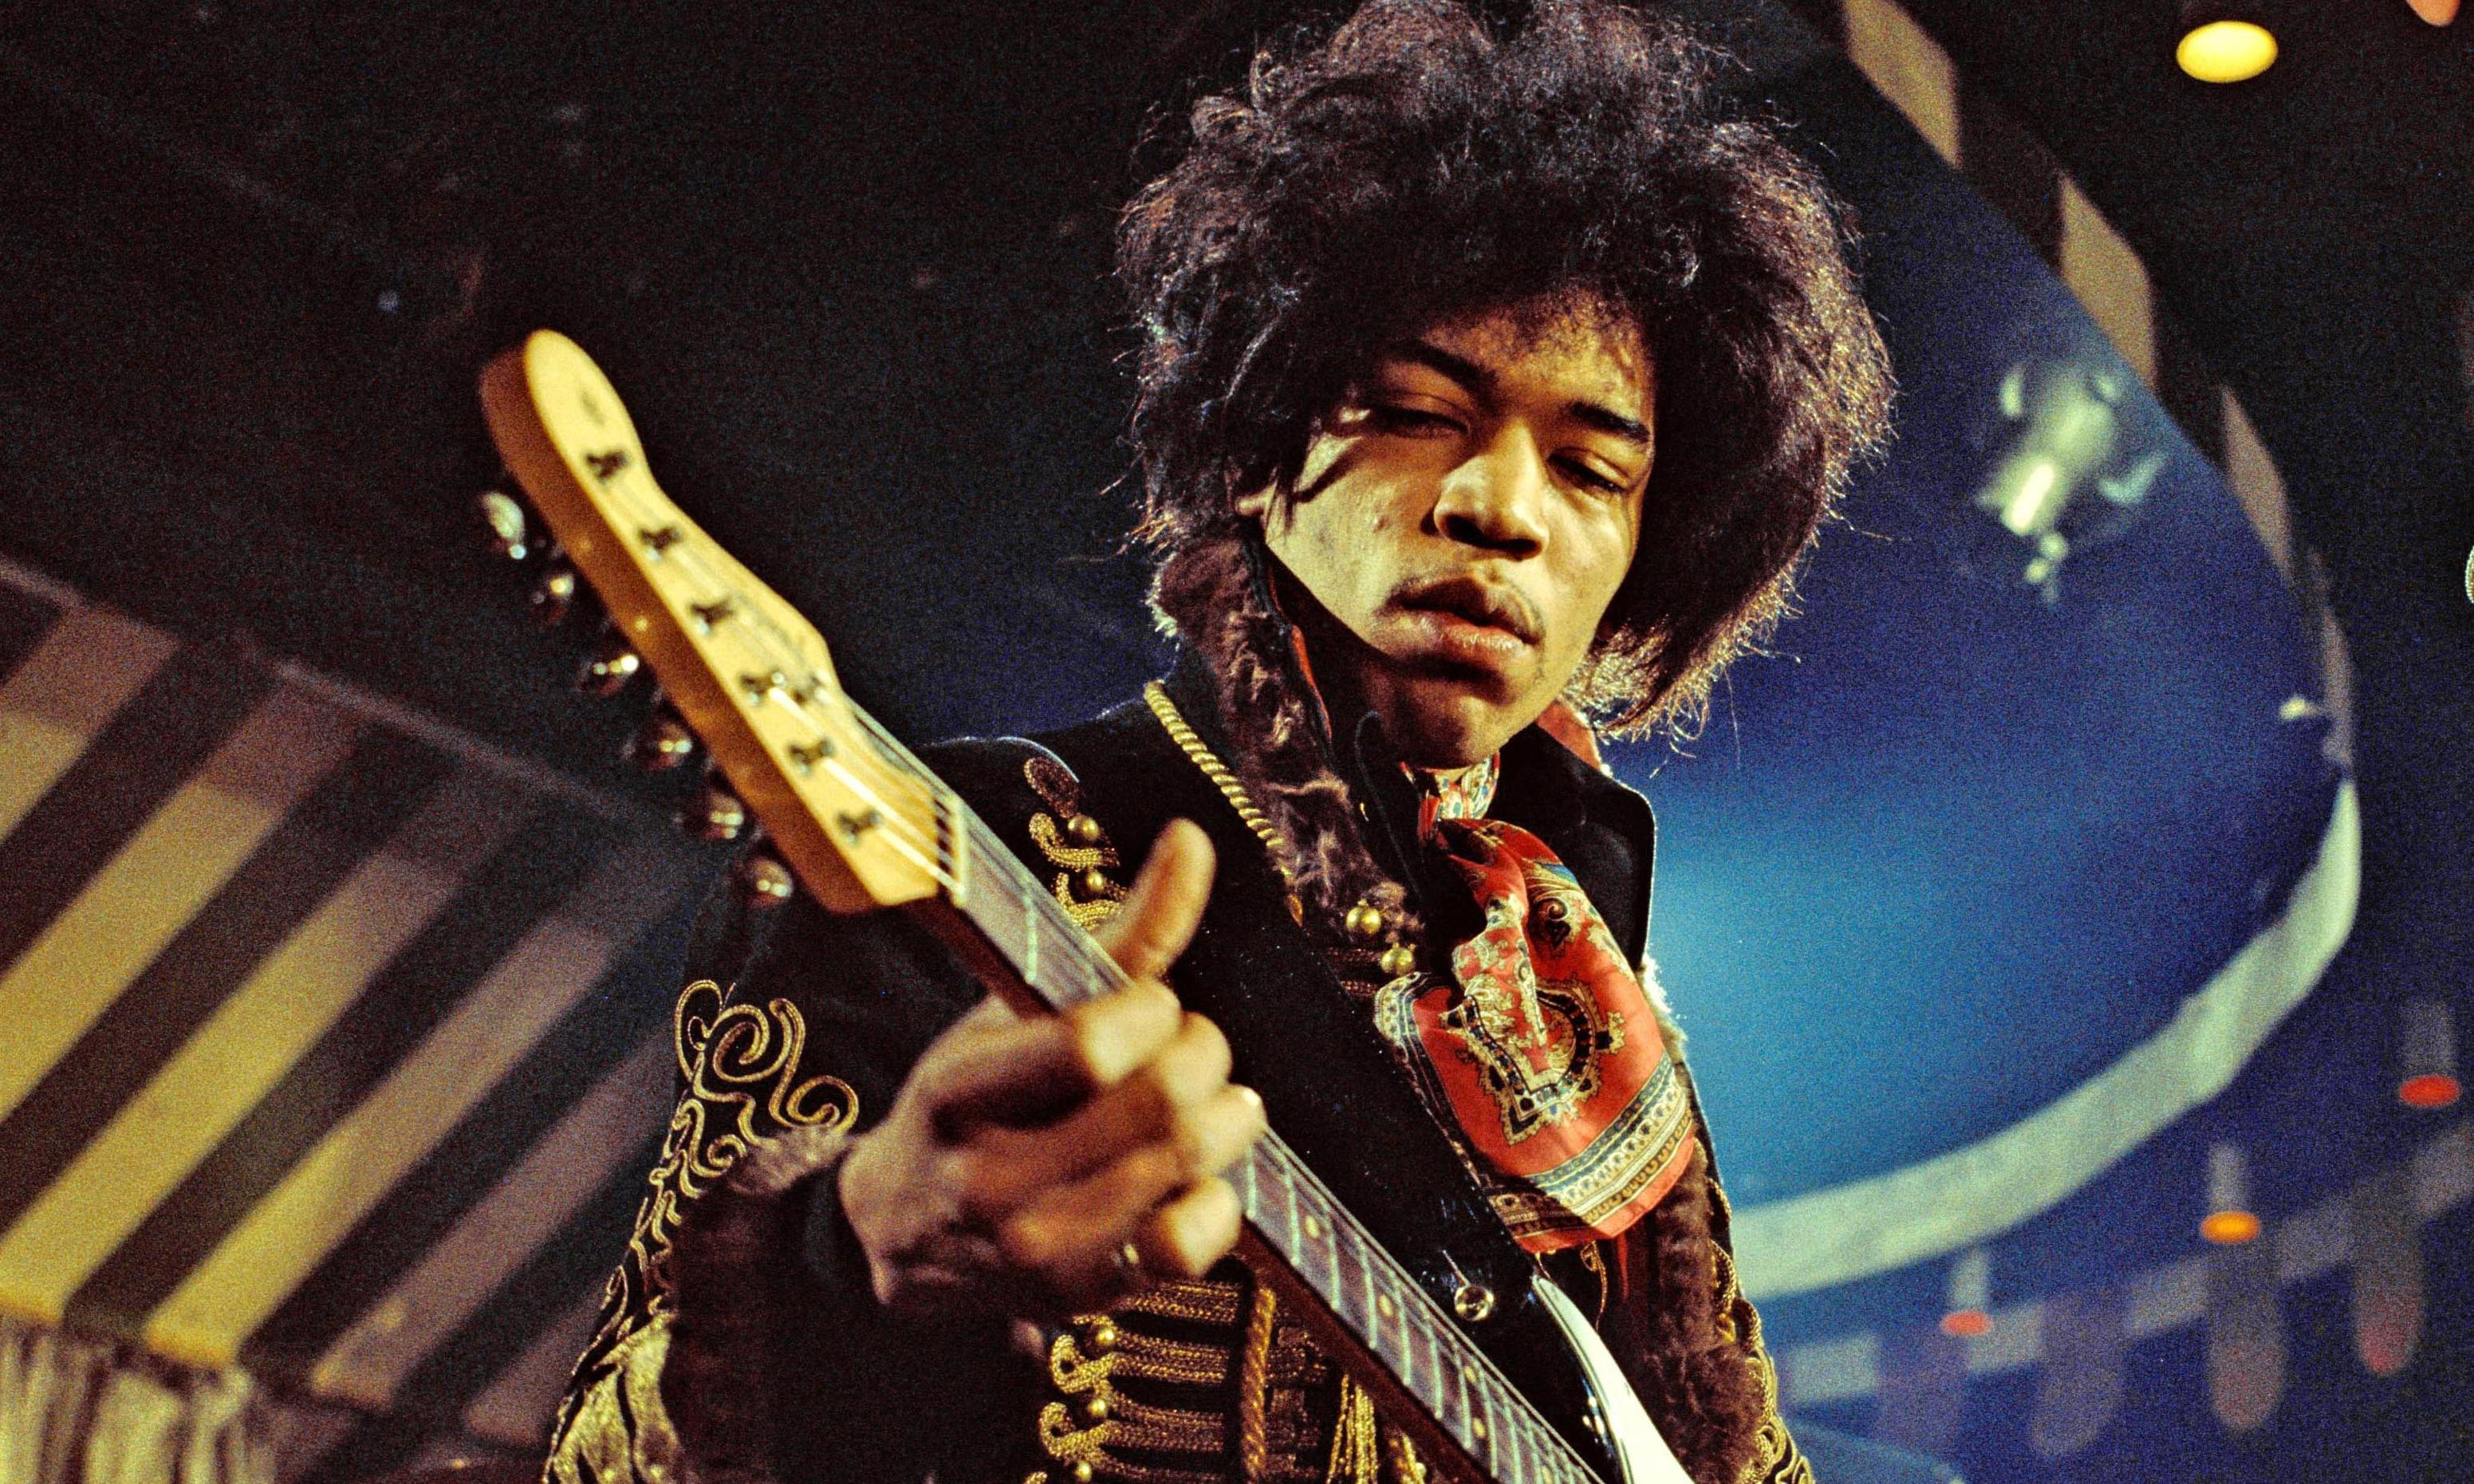 Jimi Hendrix estate sues for return of guitar worth up to $1m